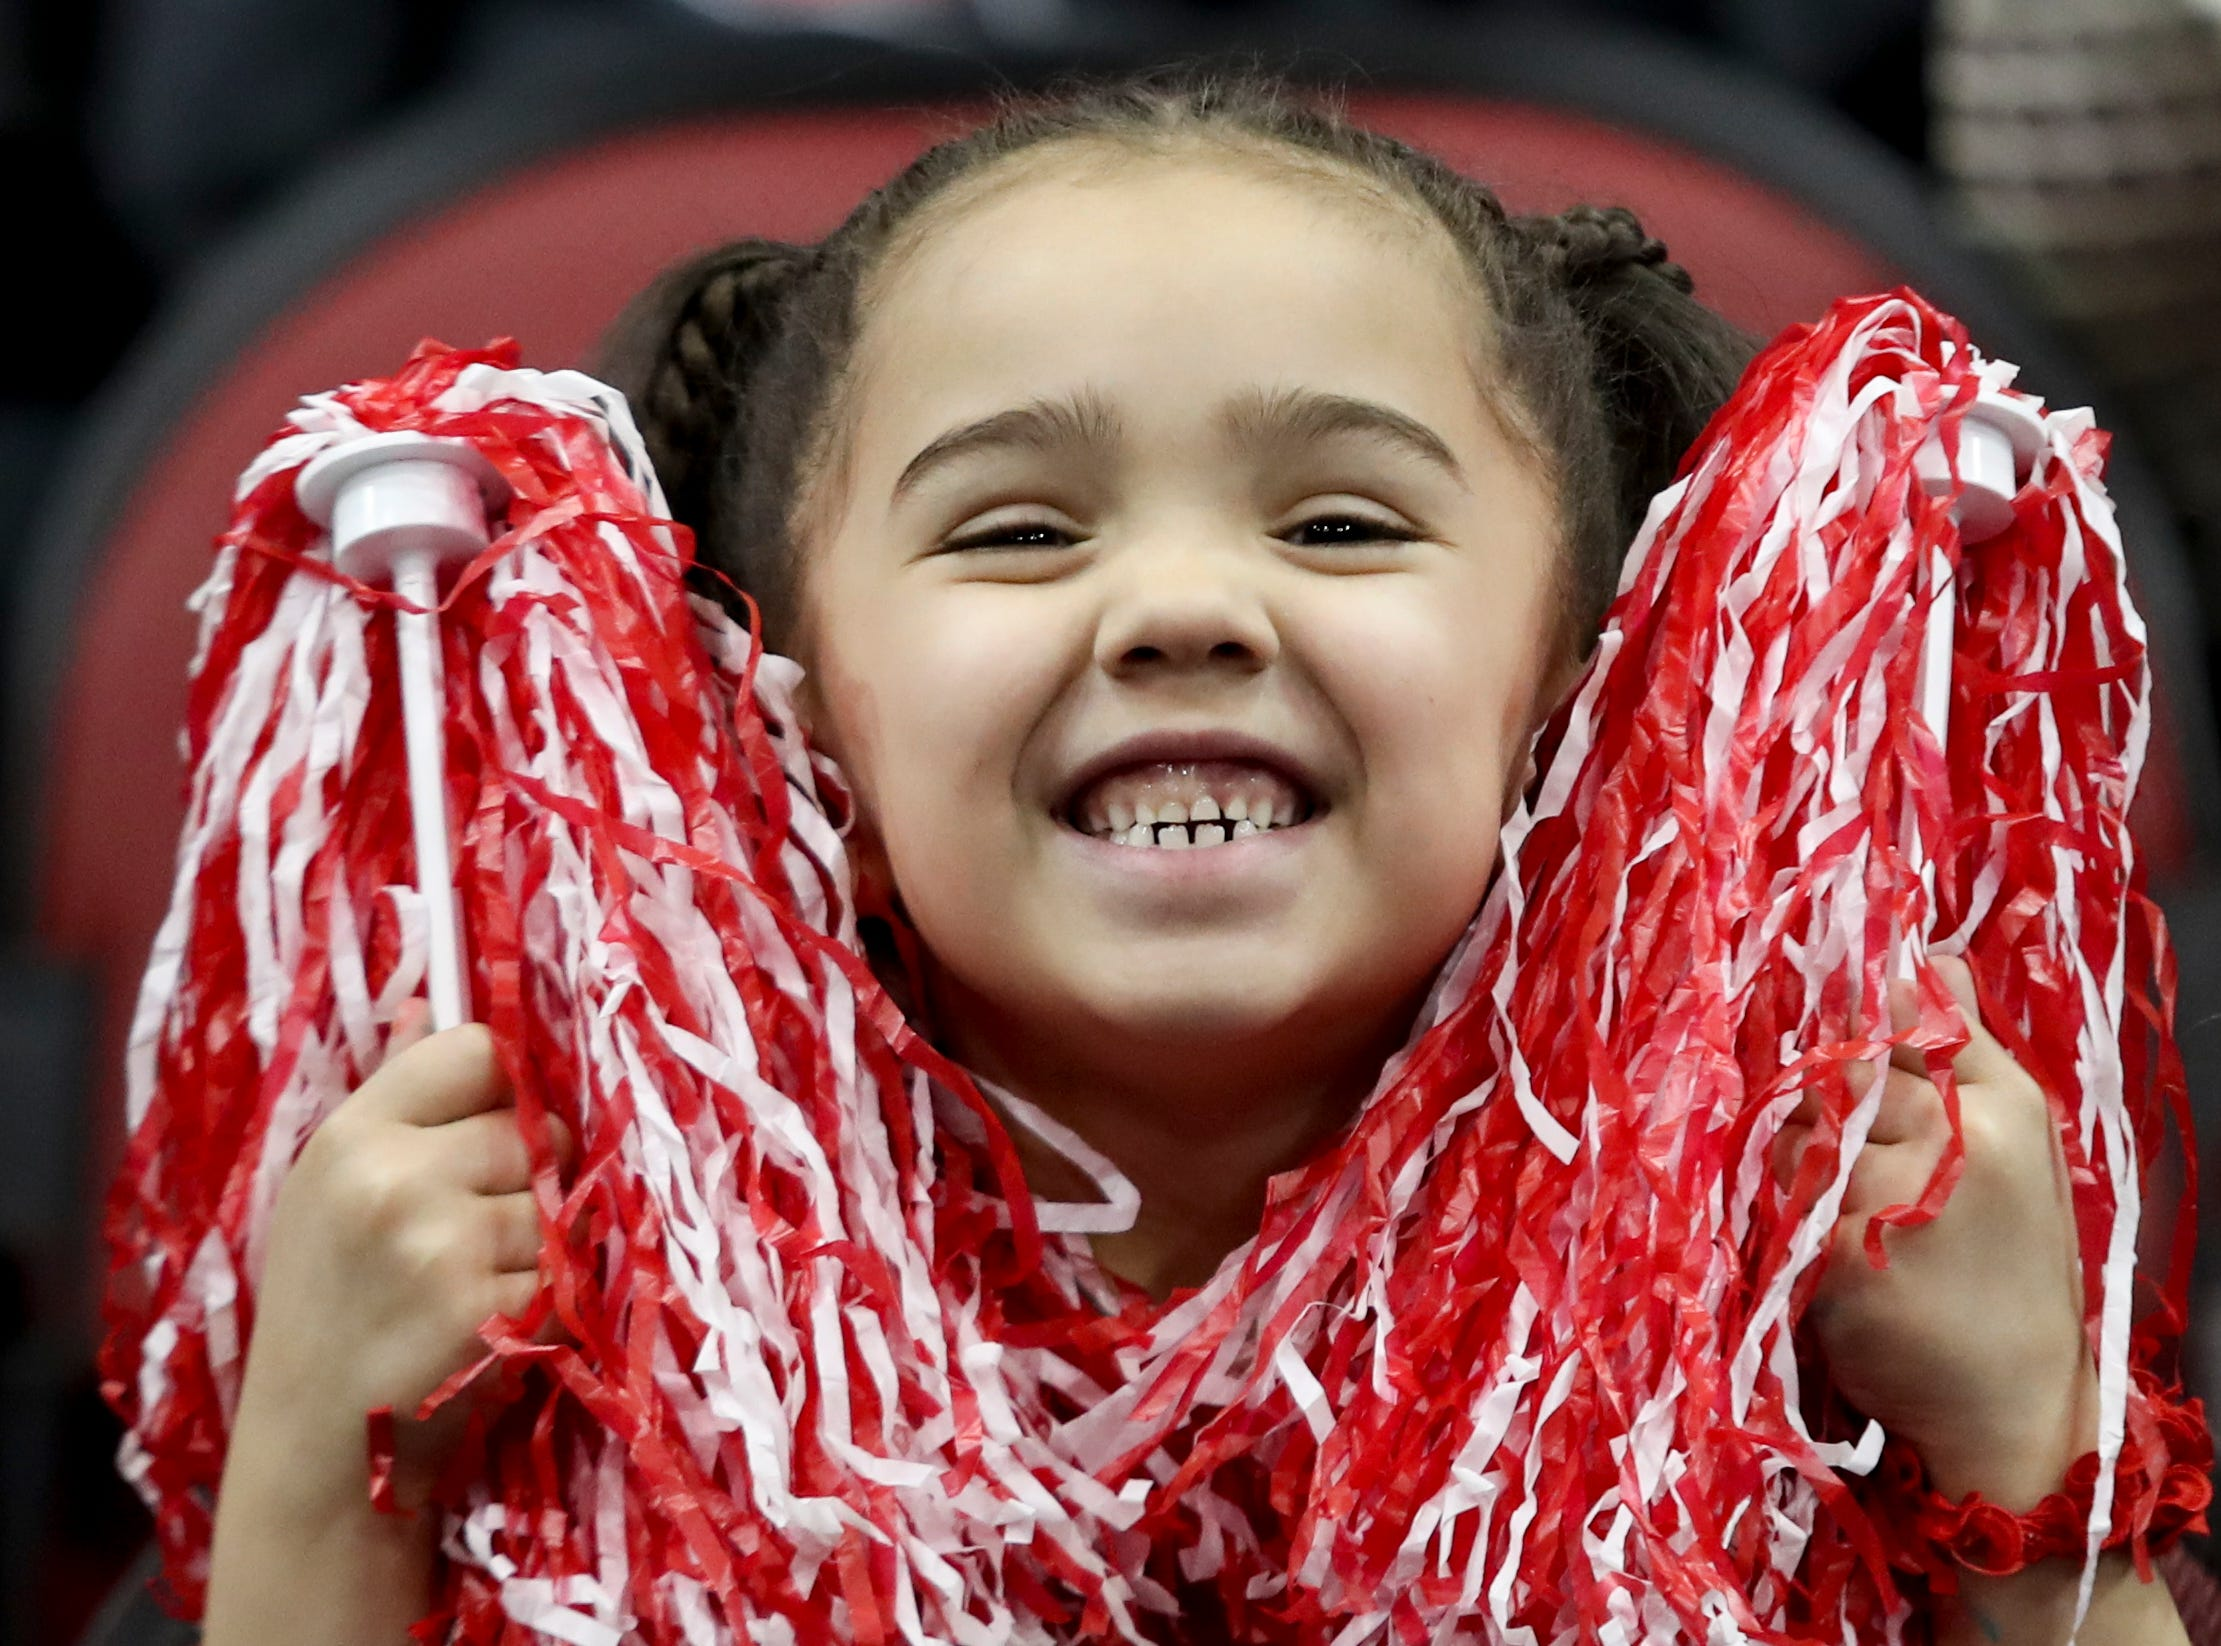 This Louisville fan is all smiles at the game against Michigan at the KFC Yum Center on March 24.